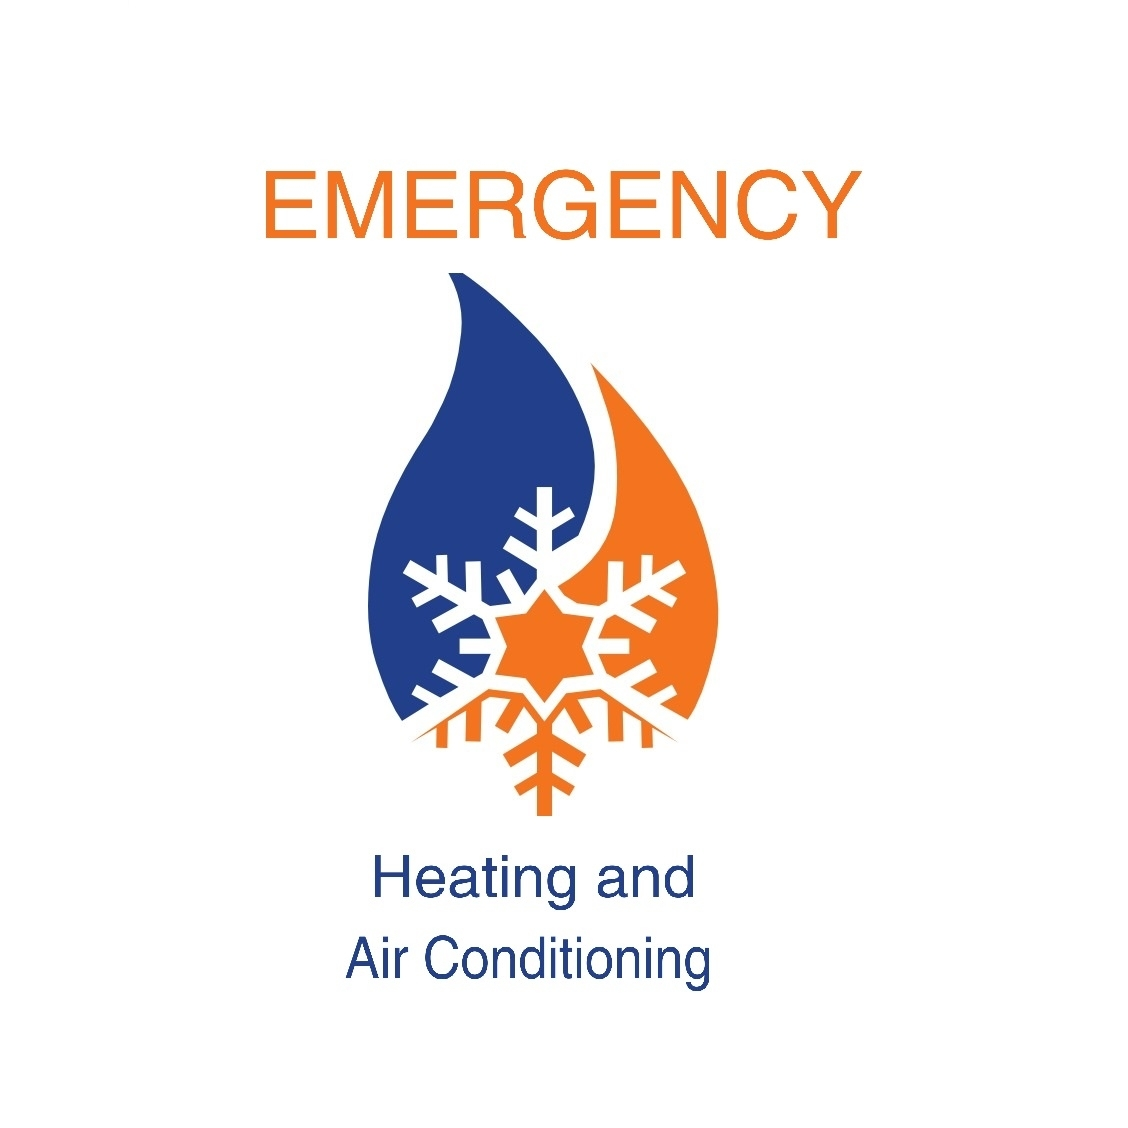 Heating And Cooling : Emergency heating and air conditioning in cumming ga